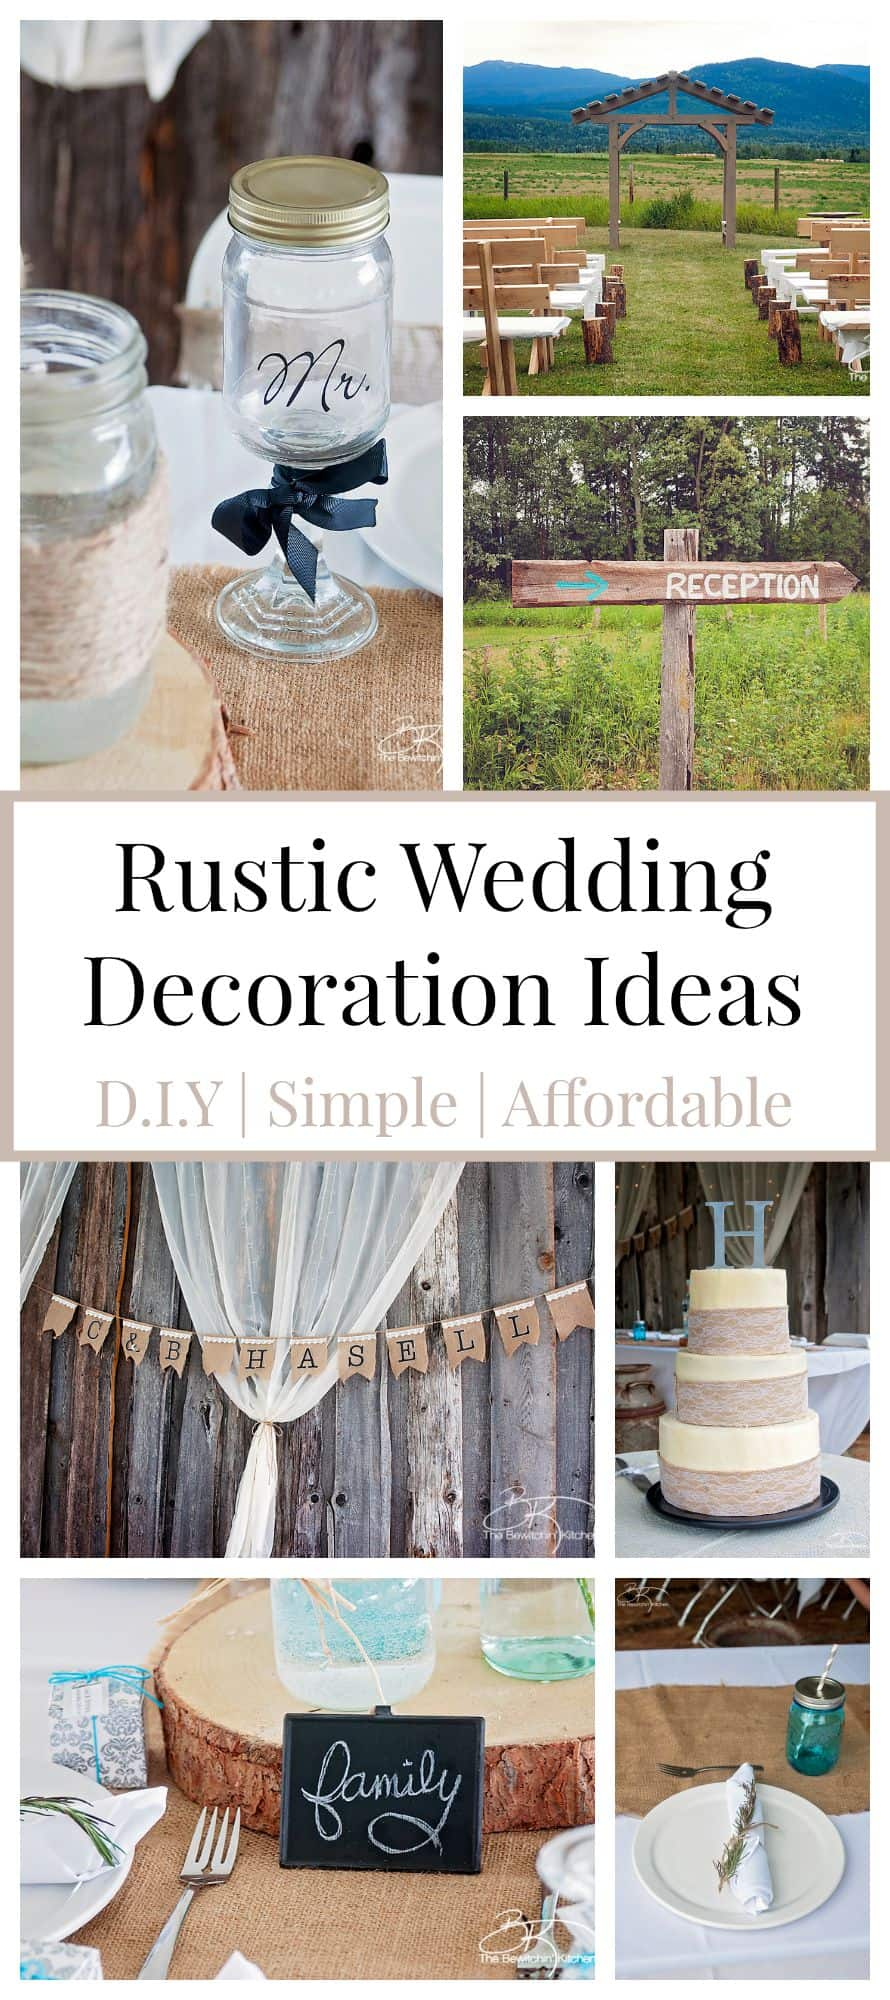 Rustic wedding ideas that are diy affordable the bewitchin kitchen rustic wedding ideas these diy wedding decorations are amazing and look incredibly cute when put junglespirit Image collections